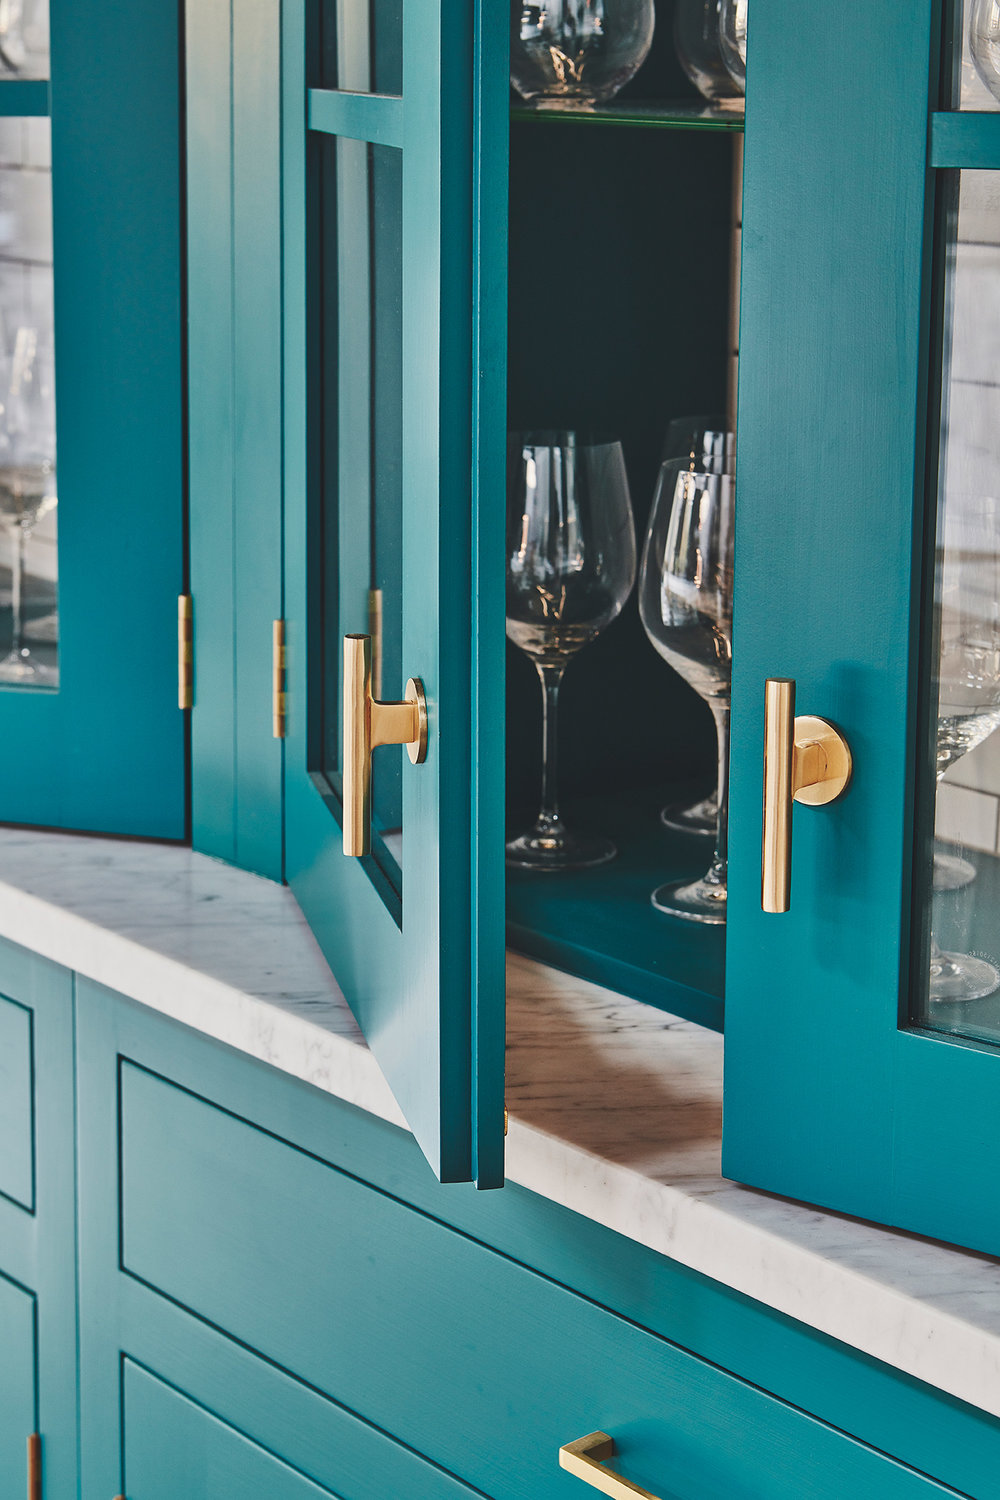 OUR TEAL DRESSER - A GREAT COLOUR WILL BE FEATURING PROMINENTLY IN 2019